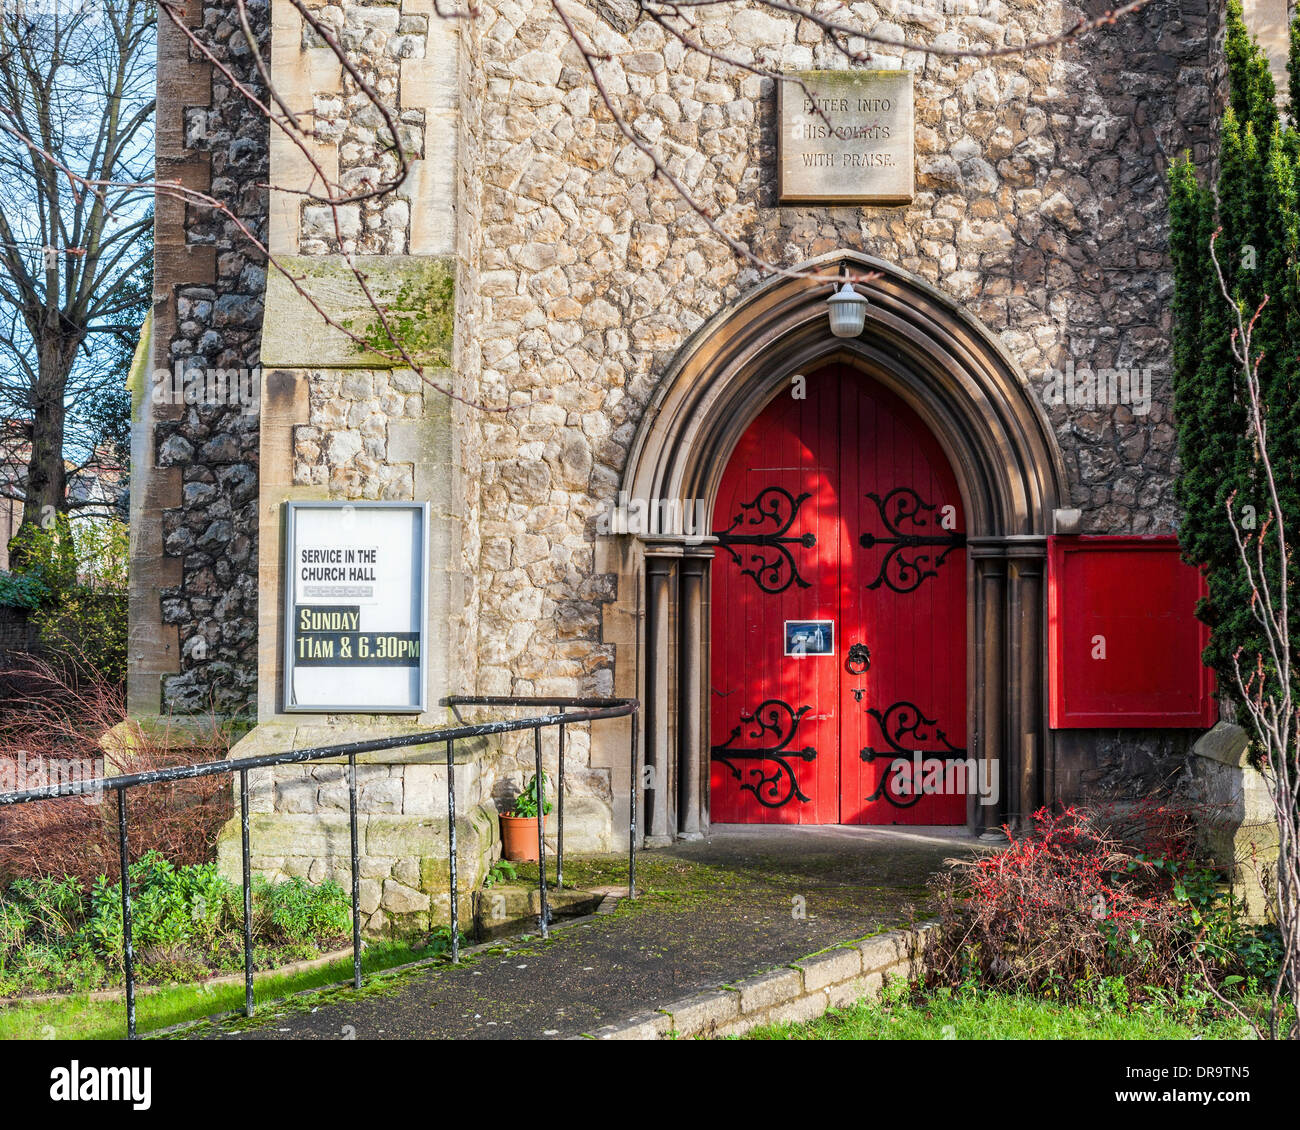 Christ Church stone building and red door - structure is unsafe, dangerous and not in use Teddington - Stock Image